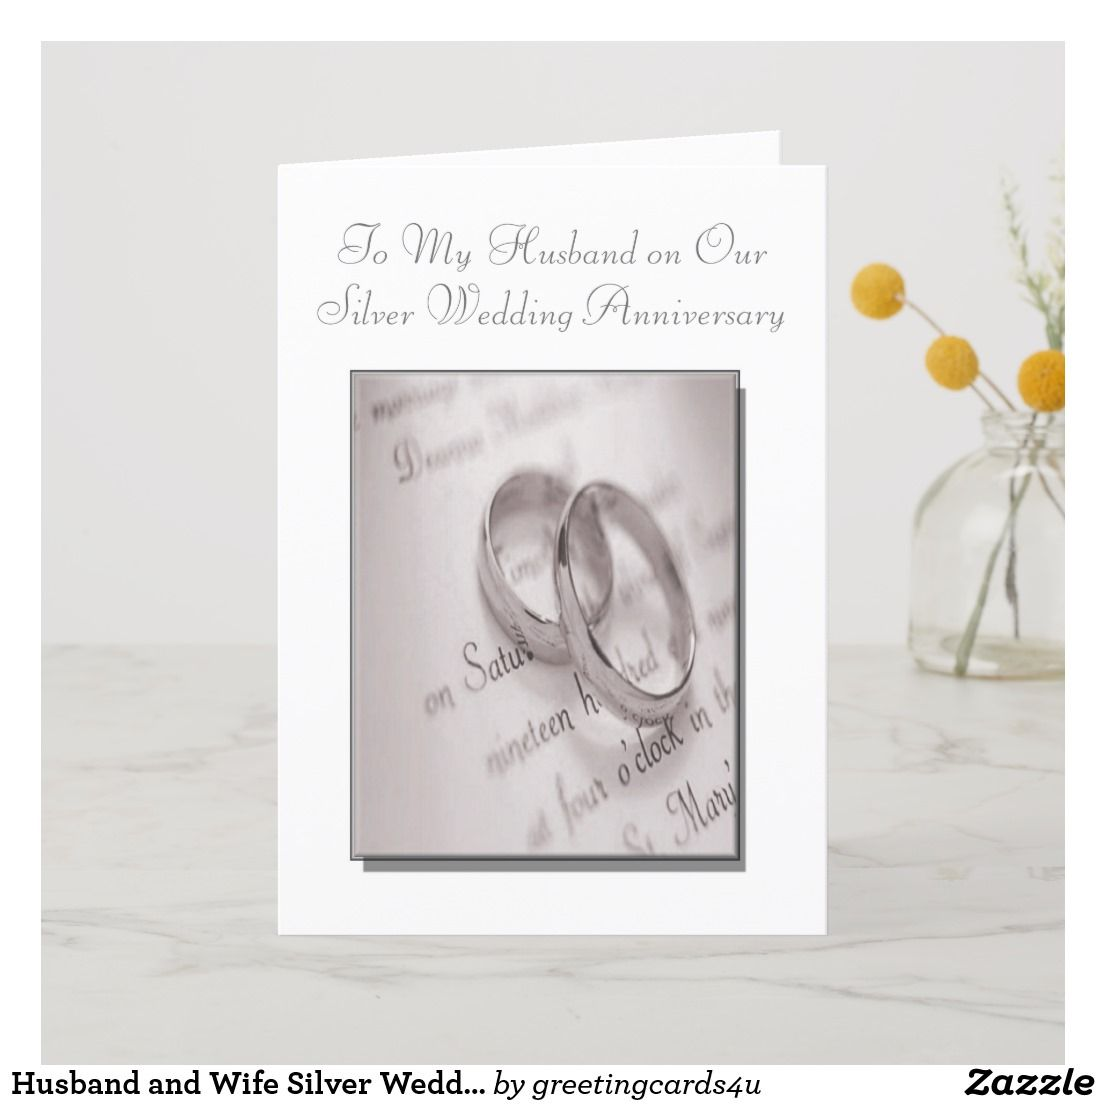 Husband and Wife Silver Wedding Anniversary Card Zazzle